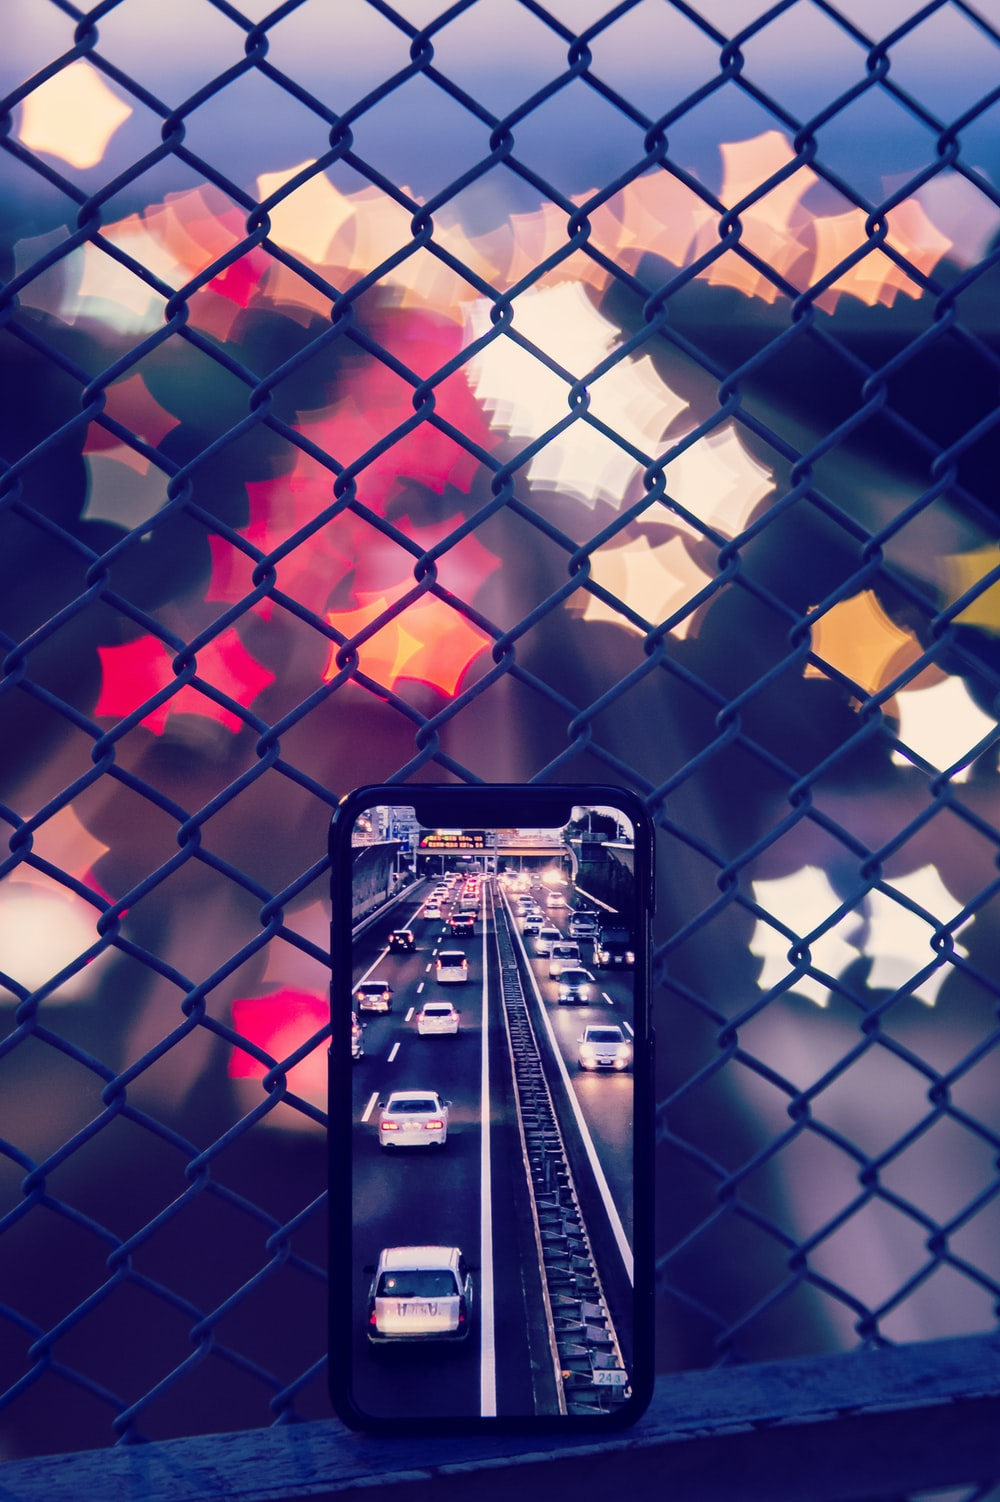 smartphone leaning on grey wired fence capturing vehicles on road